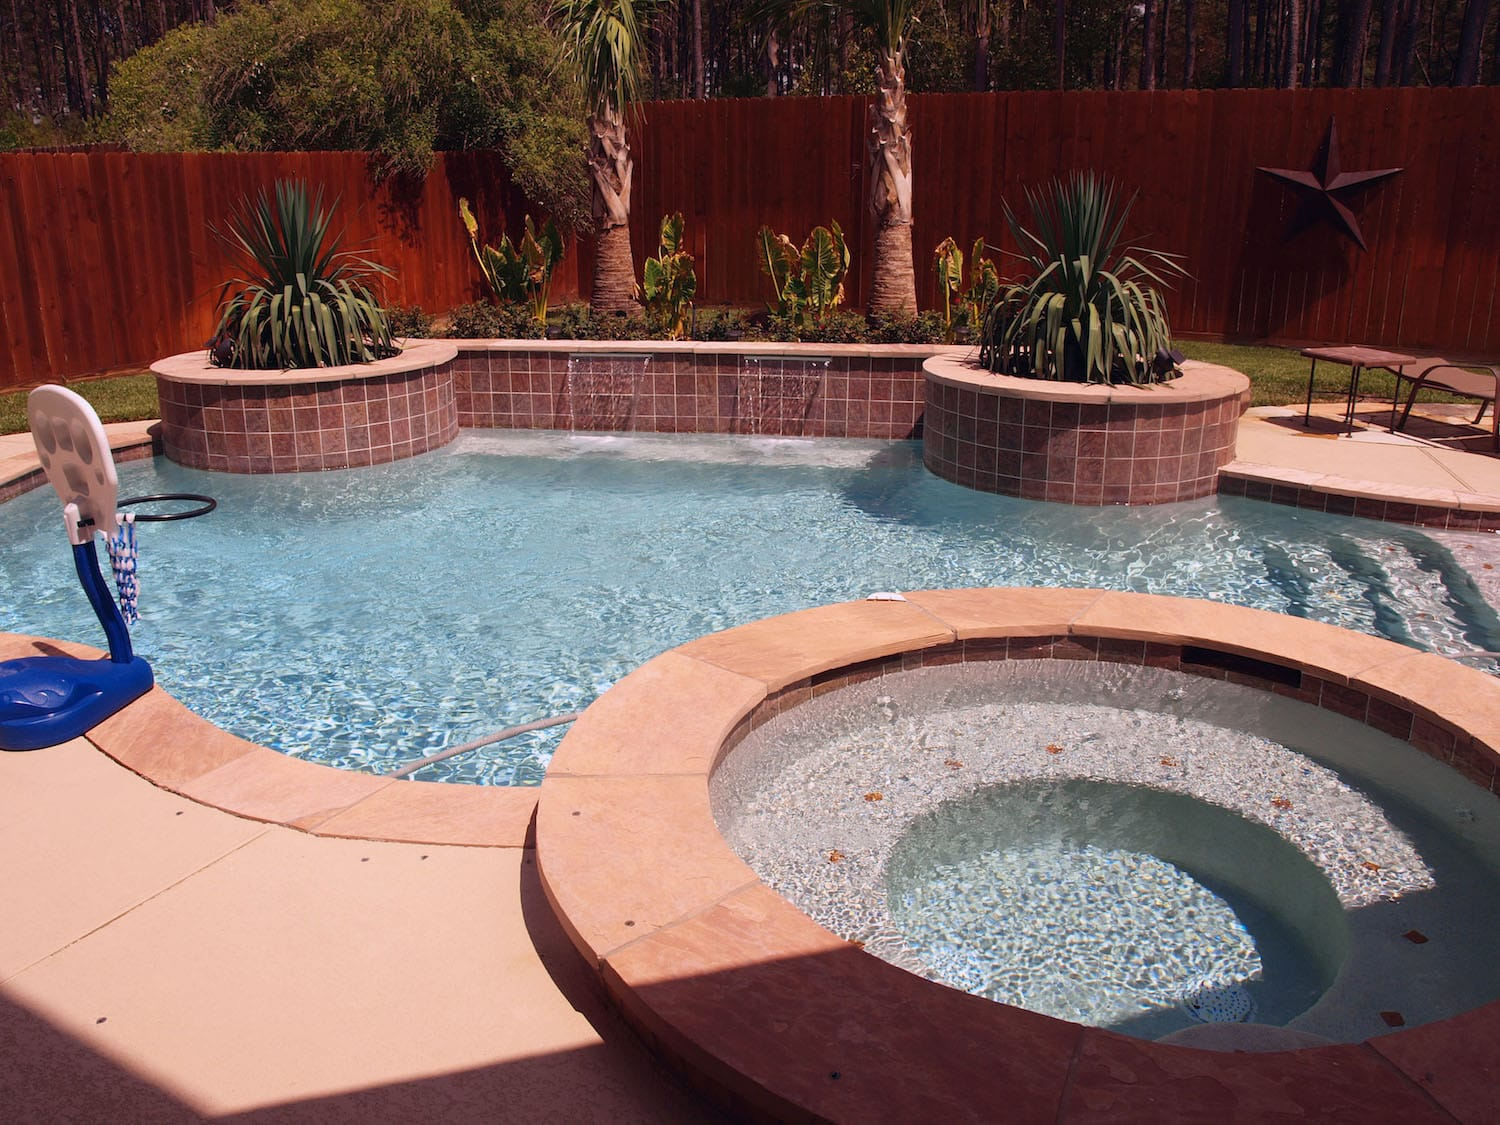 luna-quartz-martinique-pool-finish-5